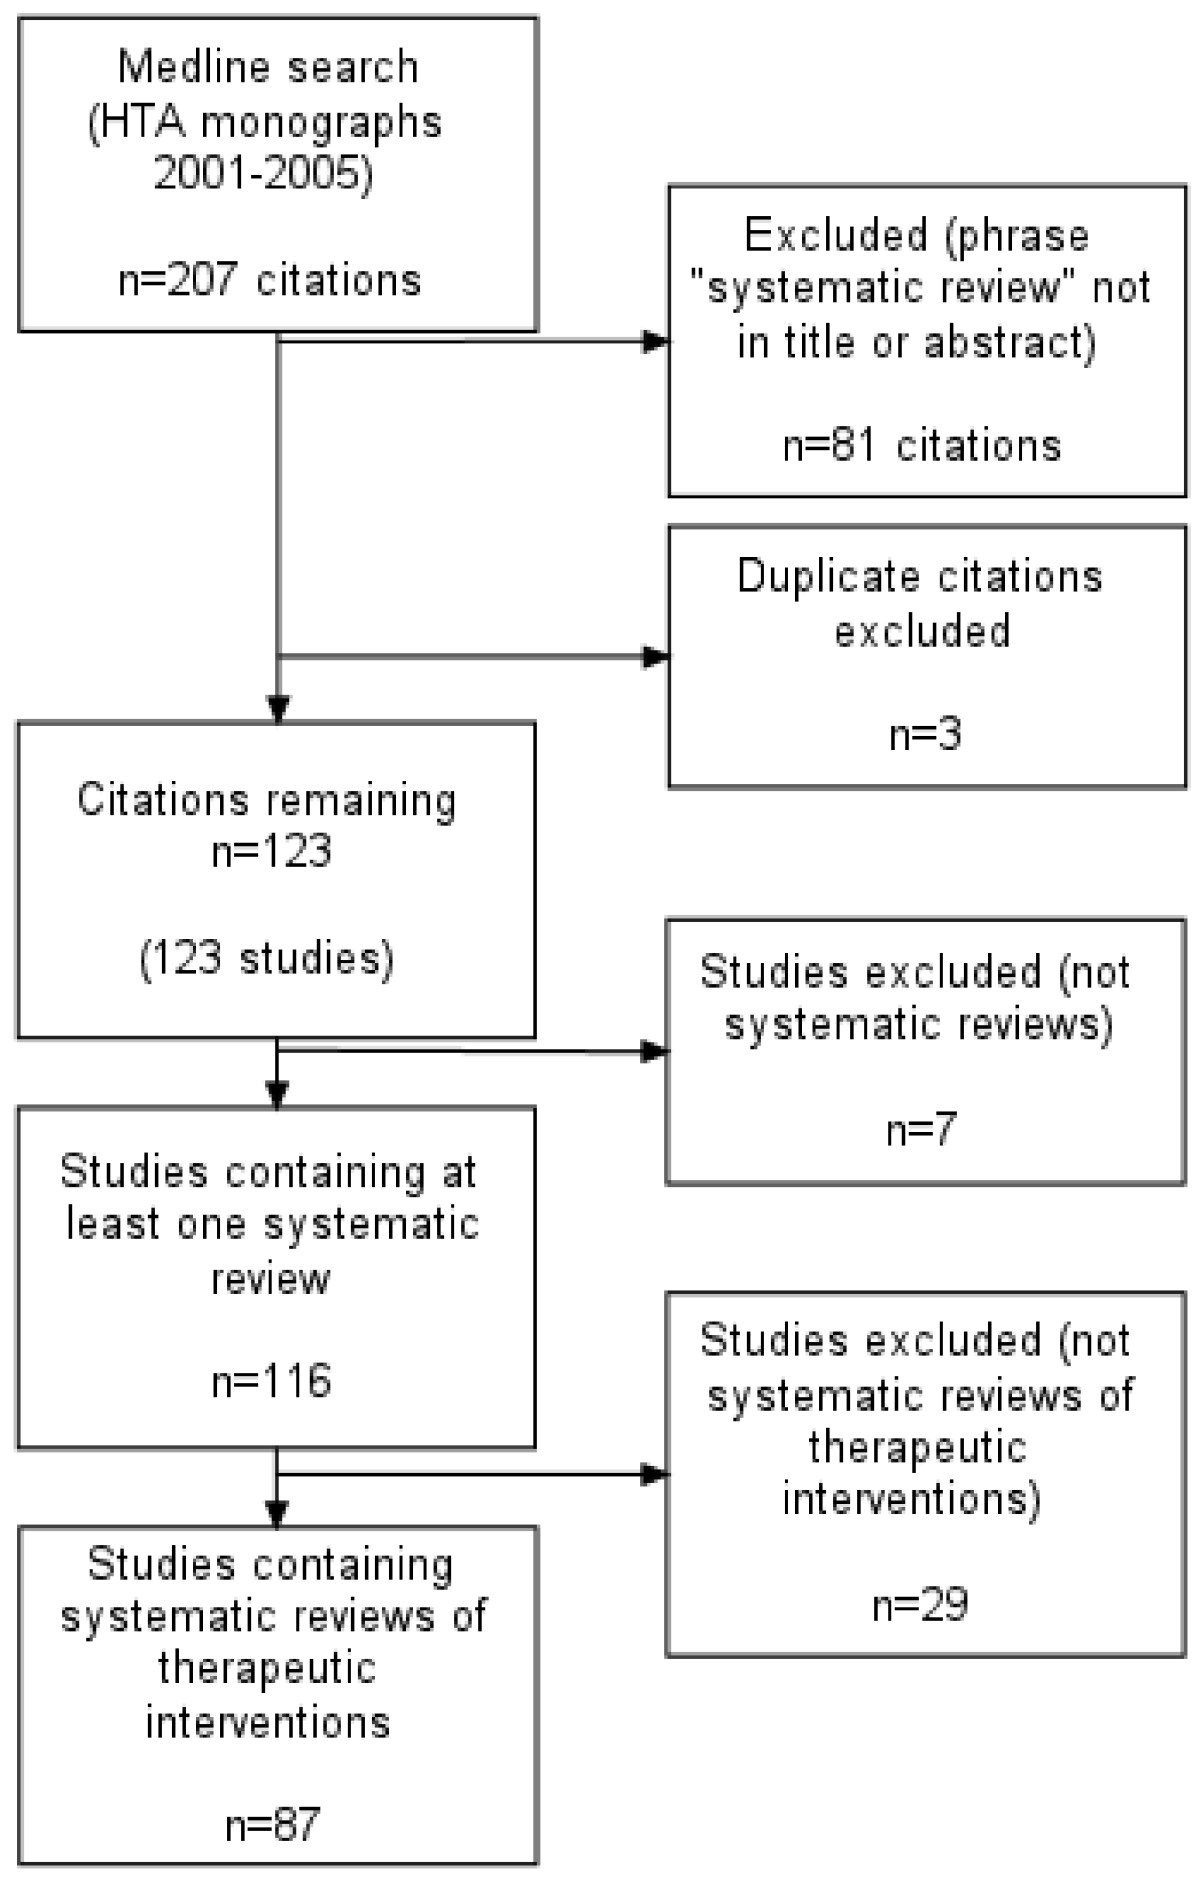 http://static-content.springer.com/image/art%3A10.1186%2F1471-2288-7-49/MediaObjects/12874_2007_Article_232_Fig2_HTML.jpg